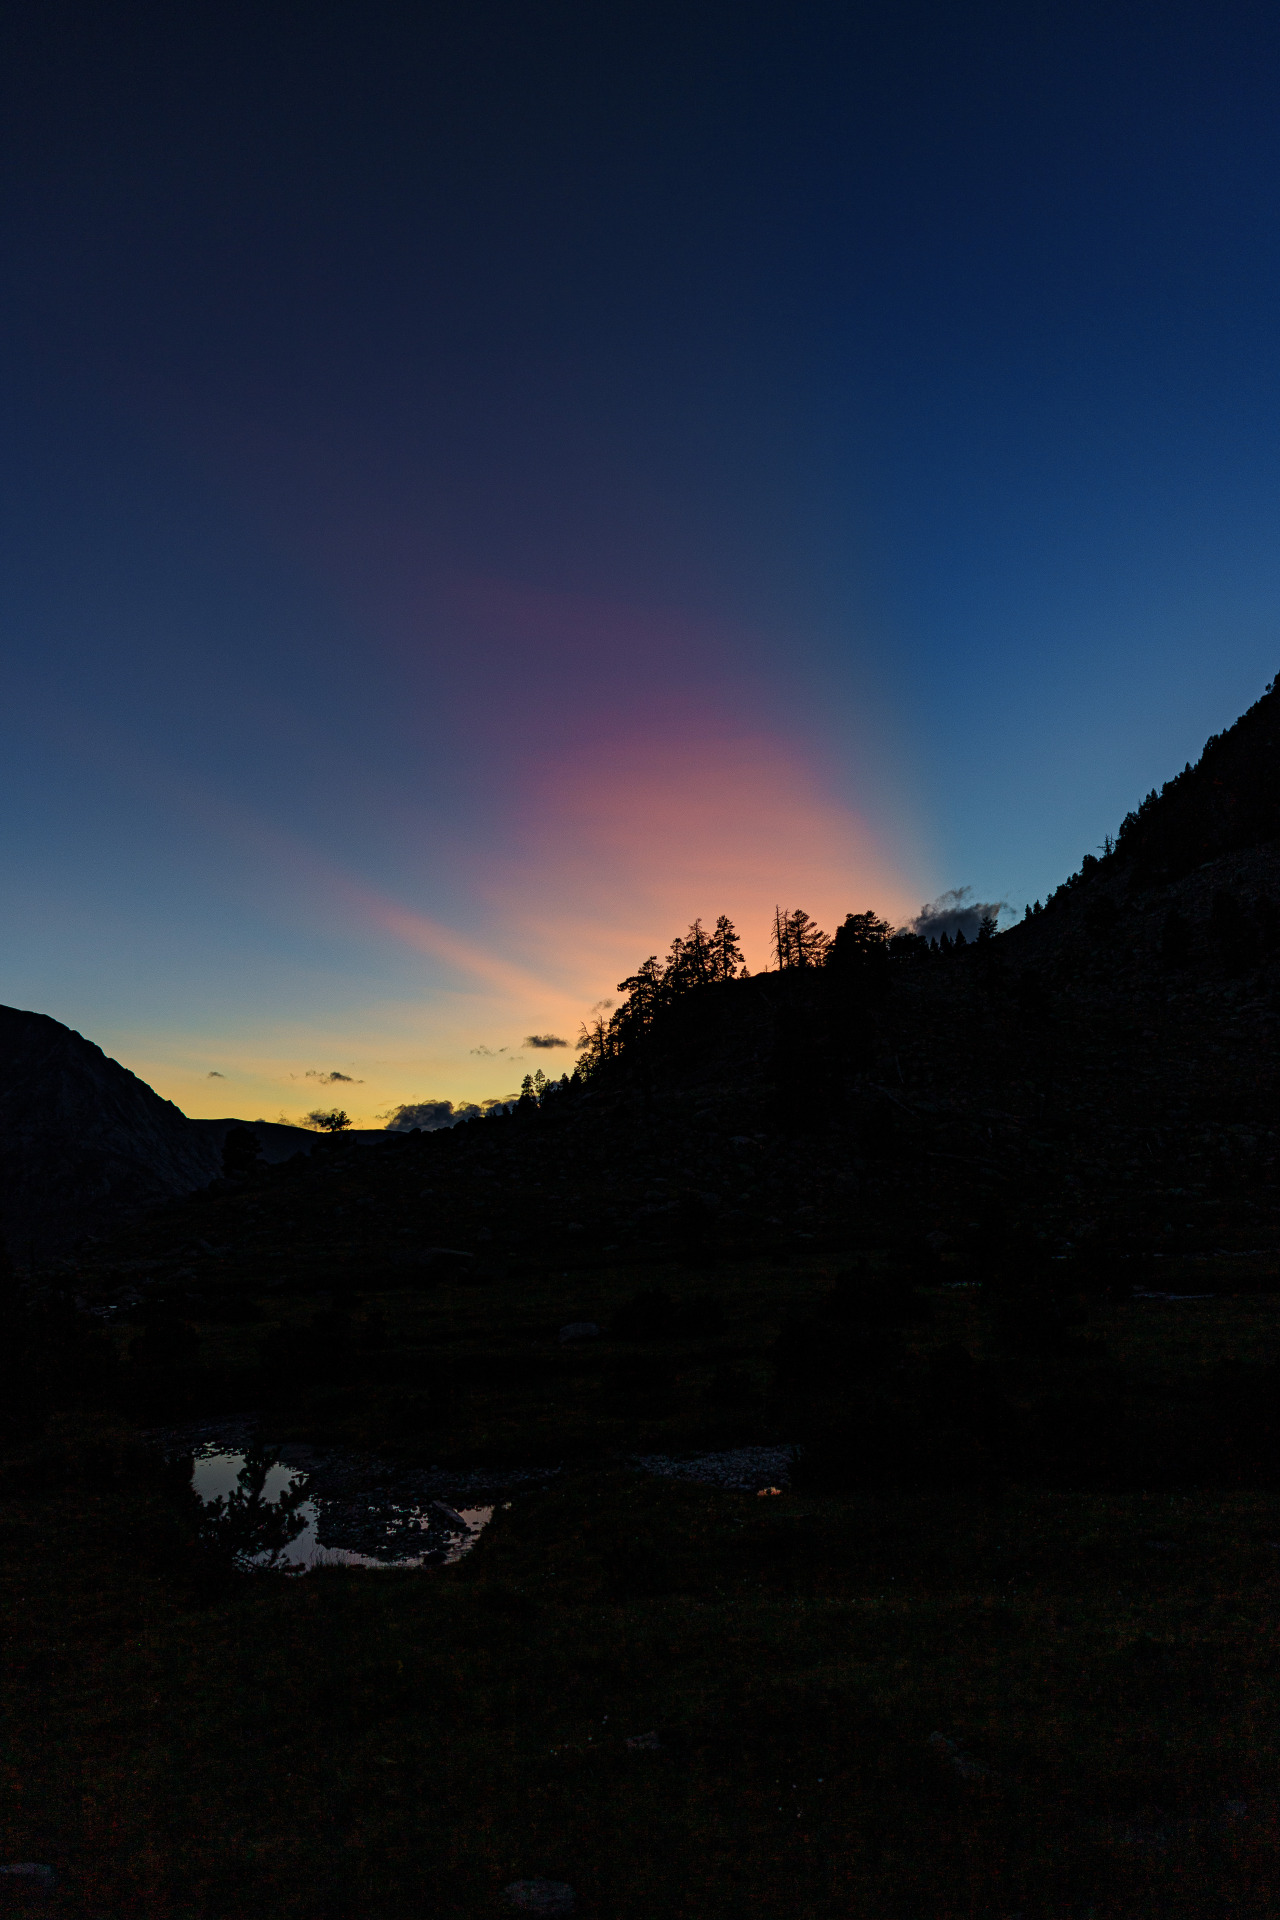 Last lightover the mountains - Haute Route Pyreneenne, August 2019 photo by nature-hiking #sunset#mountains#campsite#stream#pyrenees#landscape#HRP #Haute Route Pyreneenne  #long distance trail #backpacking#backcountry#wilderness#hiking#nature#photography#original photography #photographers on tumblr #HRP 2019